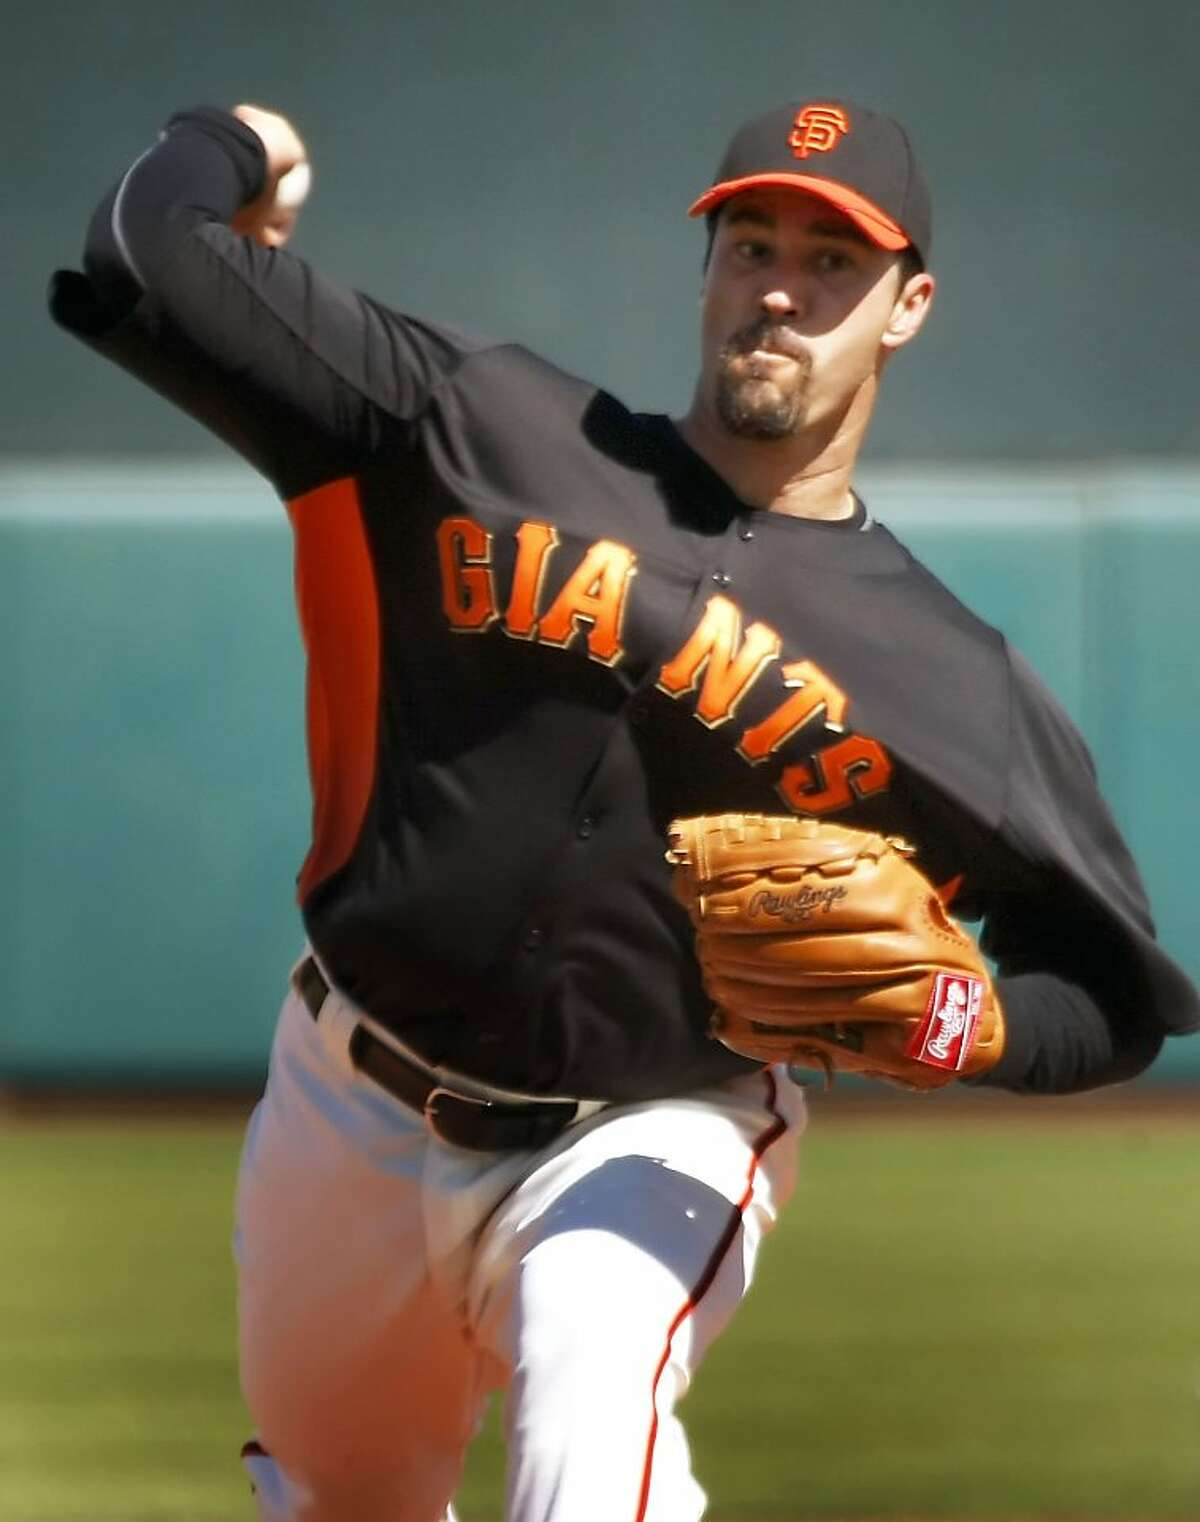 San Francisco Giants starting pitcher Jeff Suppan throws to the Milwaukee Brewers during the first inning of a spring training baseball game at Scottsdale Stadium in Scottsdale, Ariz. Friday, March 4, 2011.